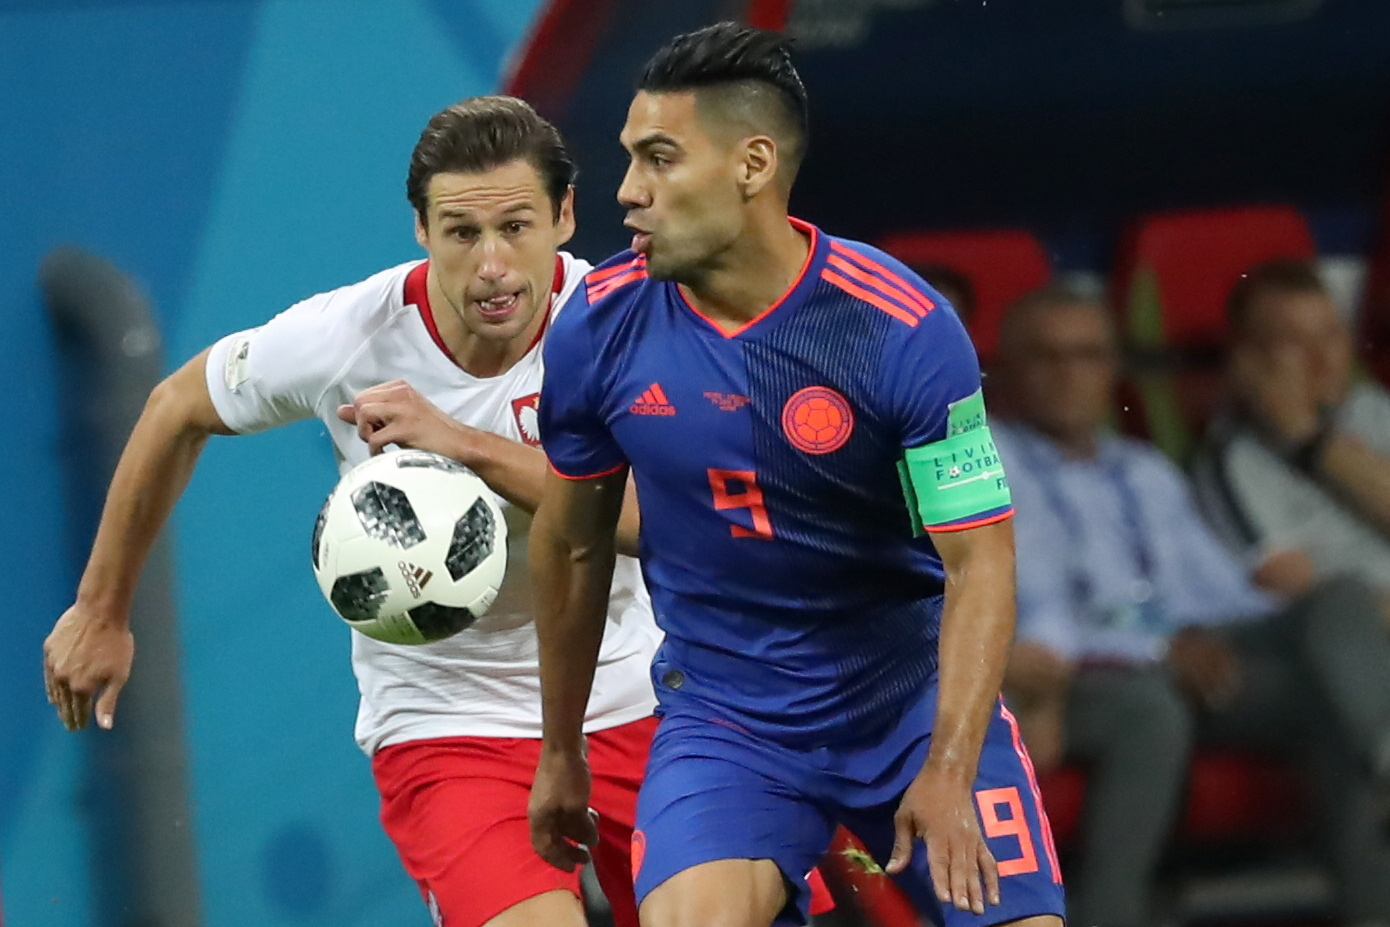 Falcao at United: World Cup Reminds Fans What Might Have Been